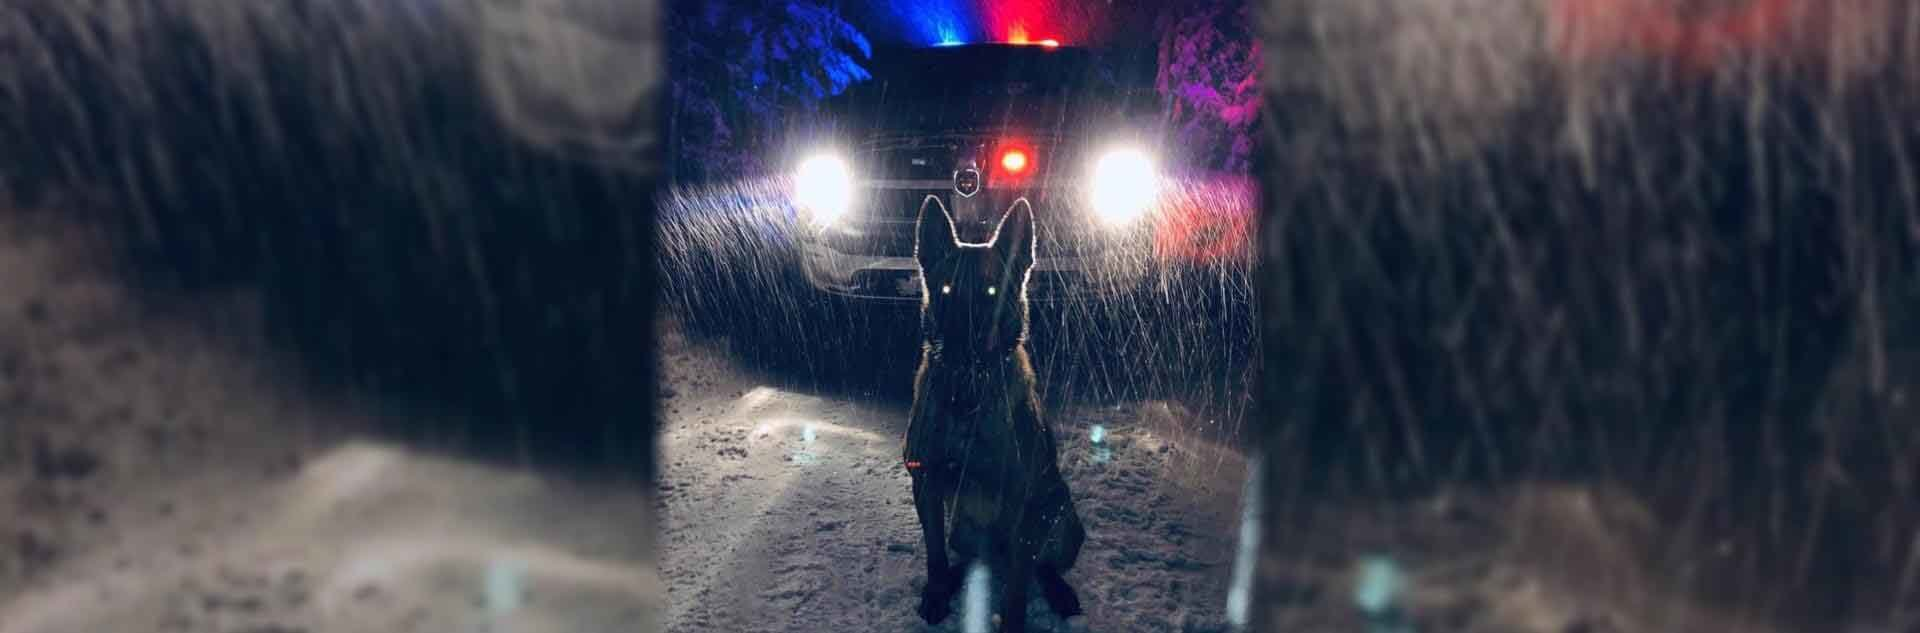 K-9 in front of a patrol car in a winter storm.